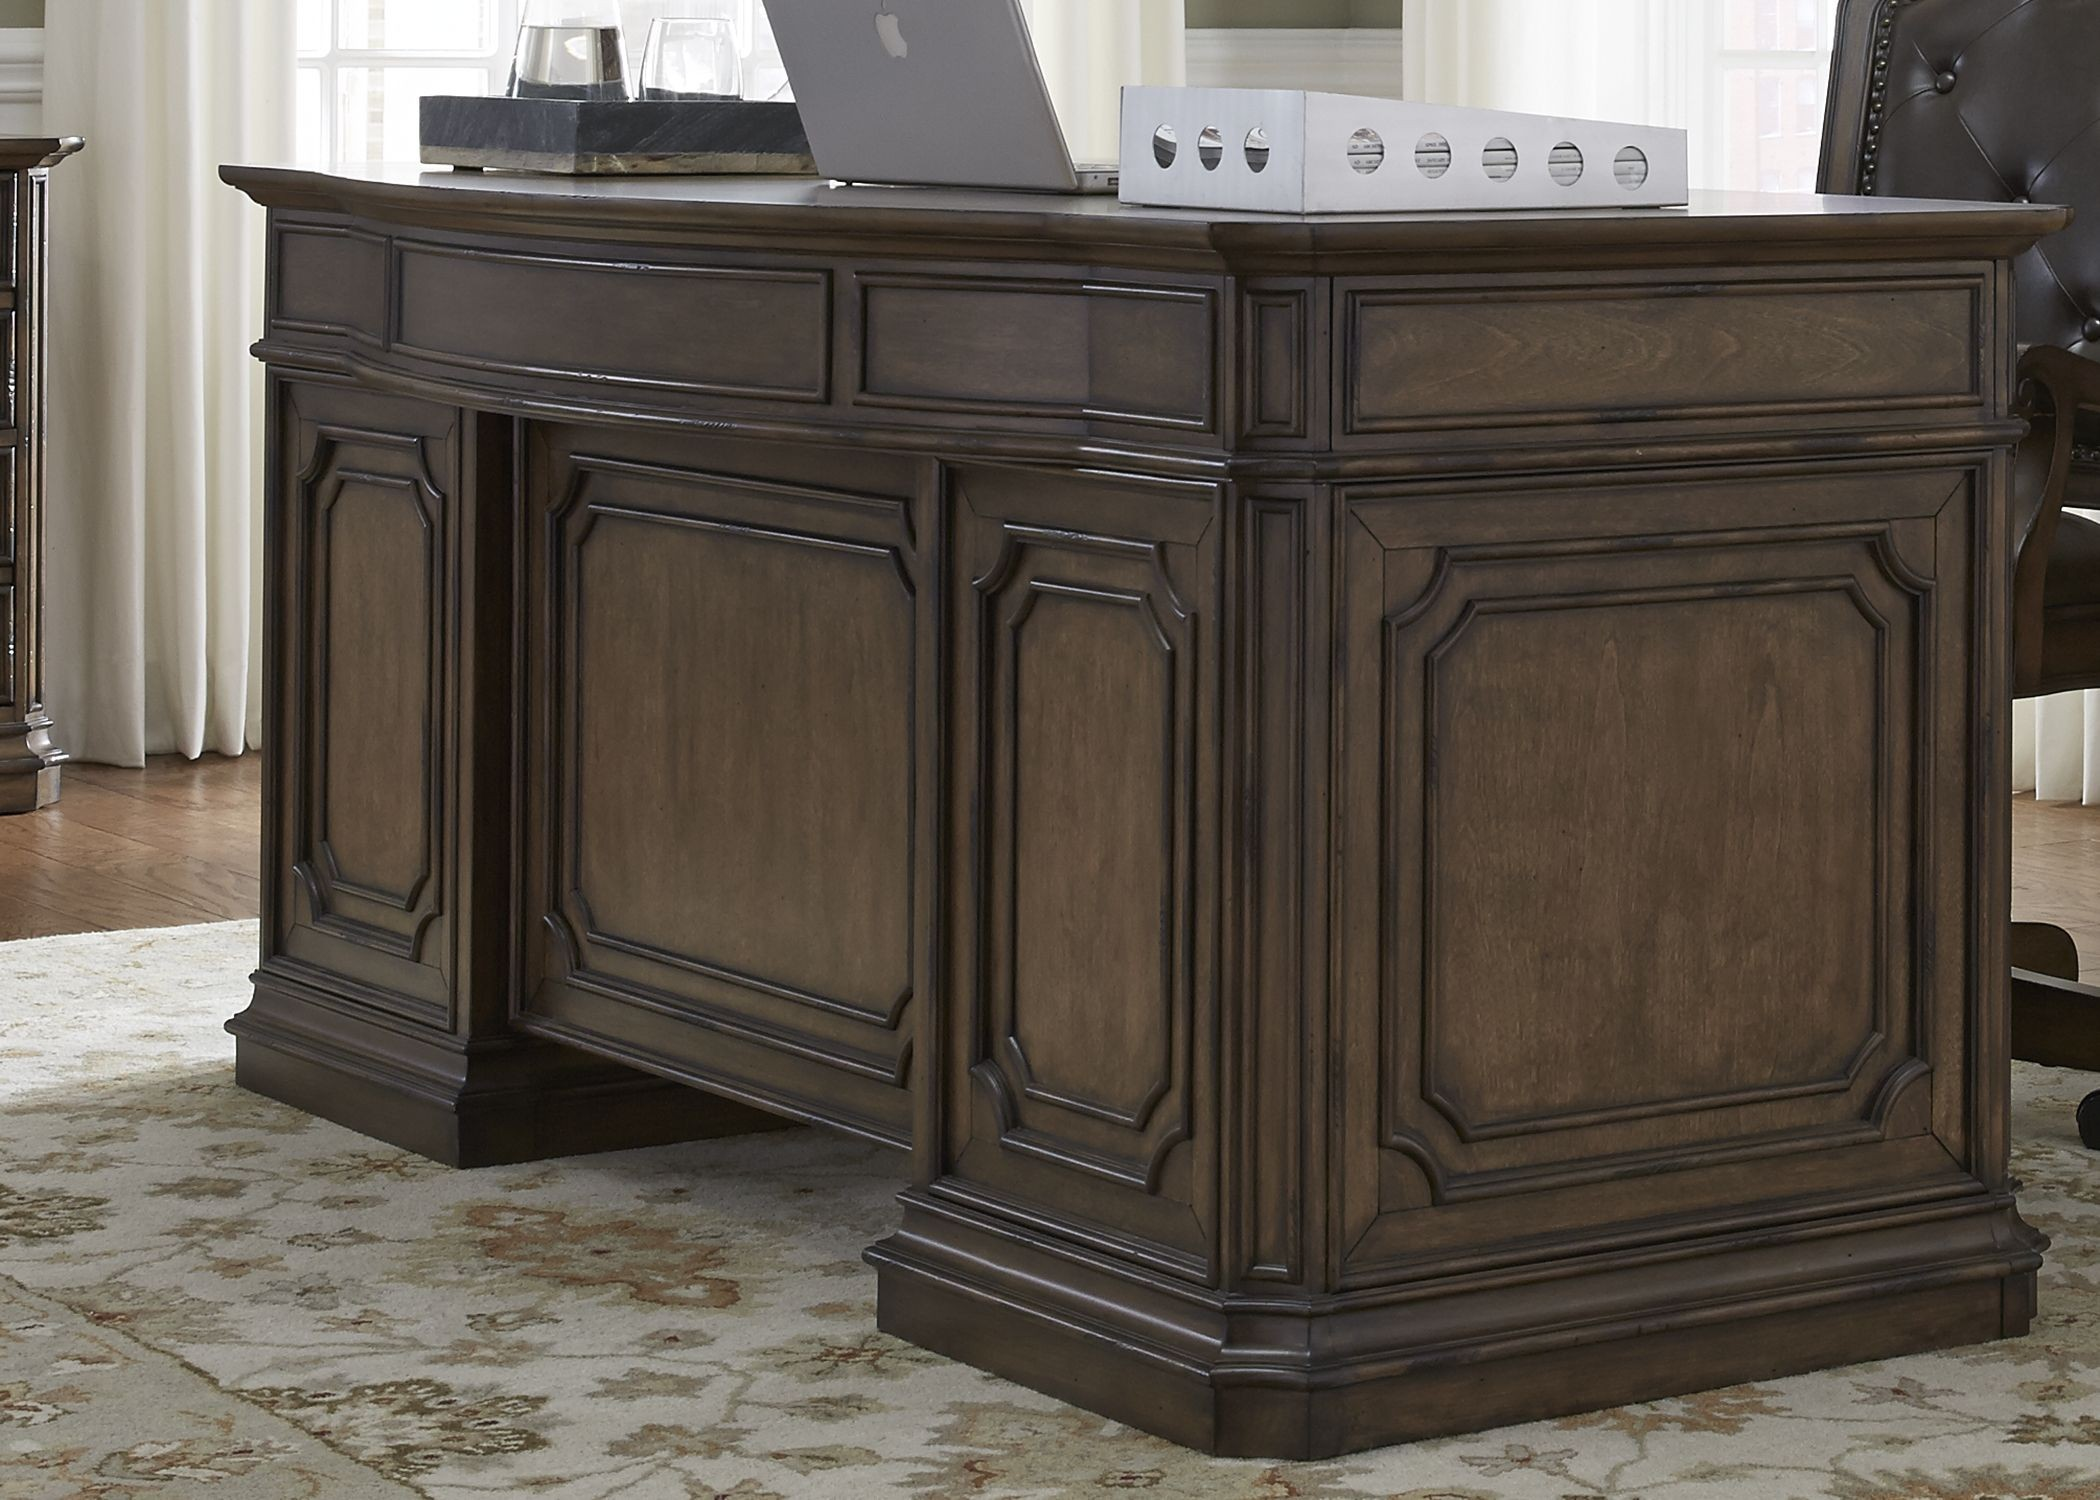 Amelia Antique Toffee Jr Executive Desk From Liberty